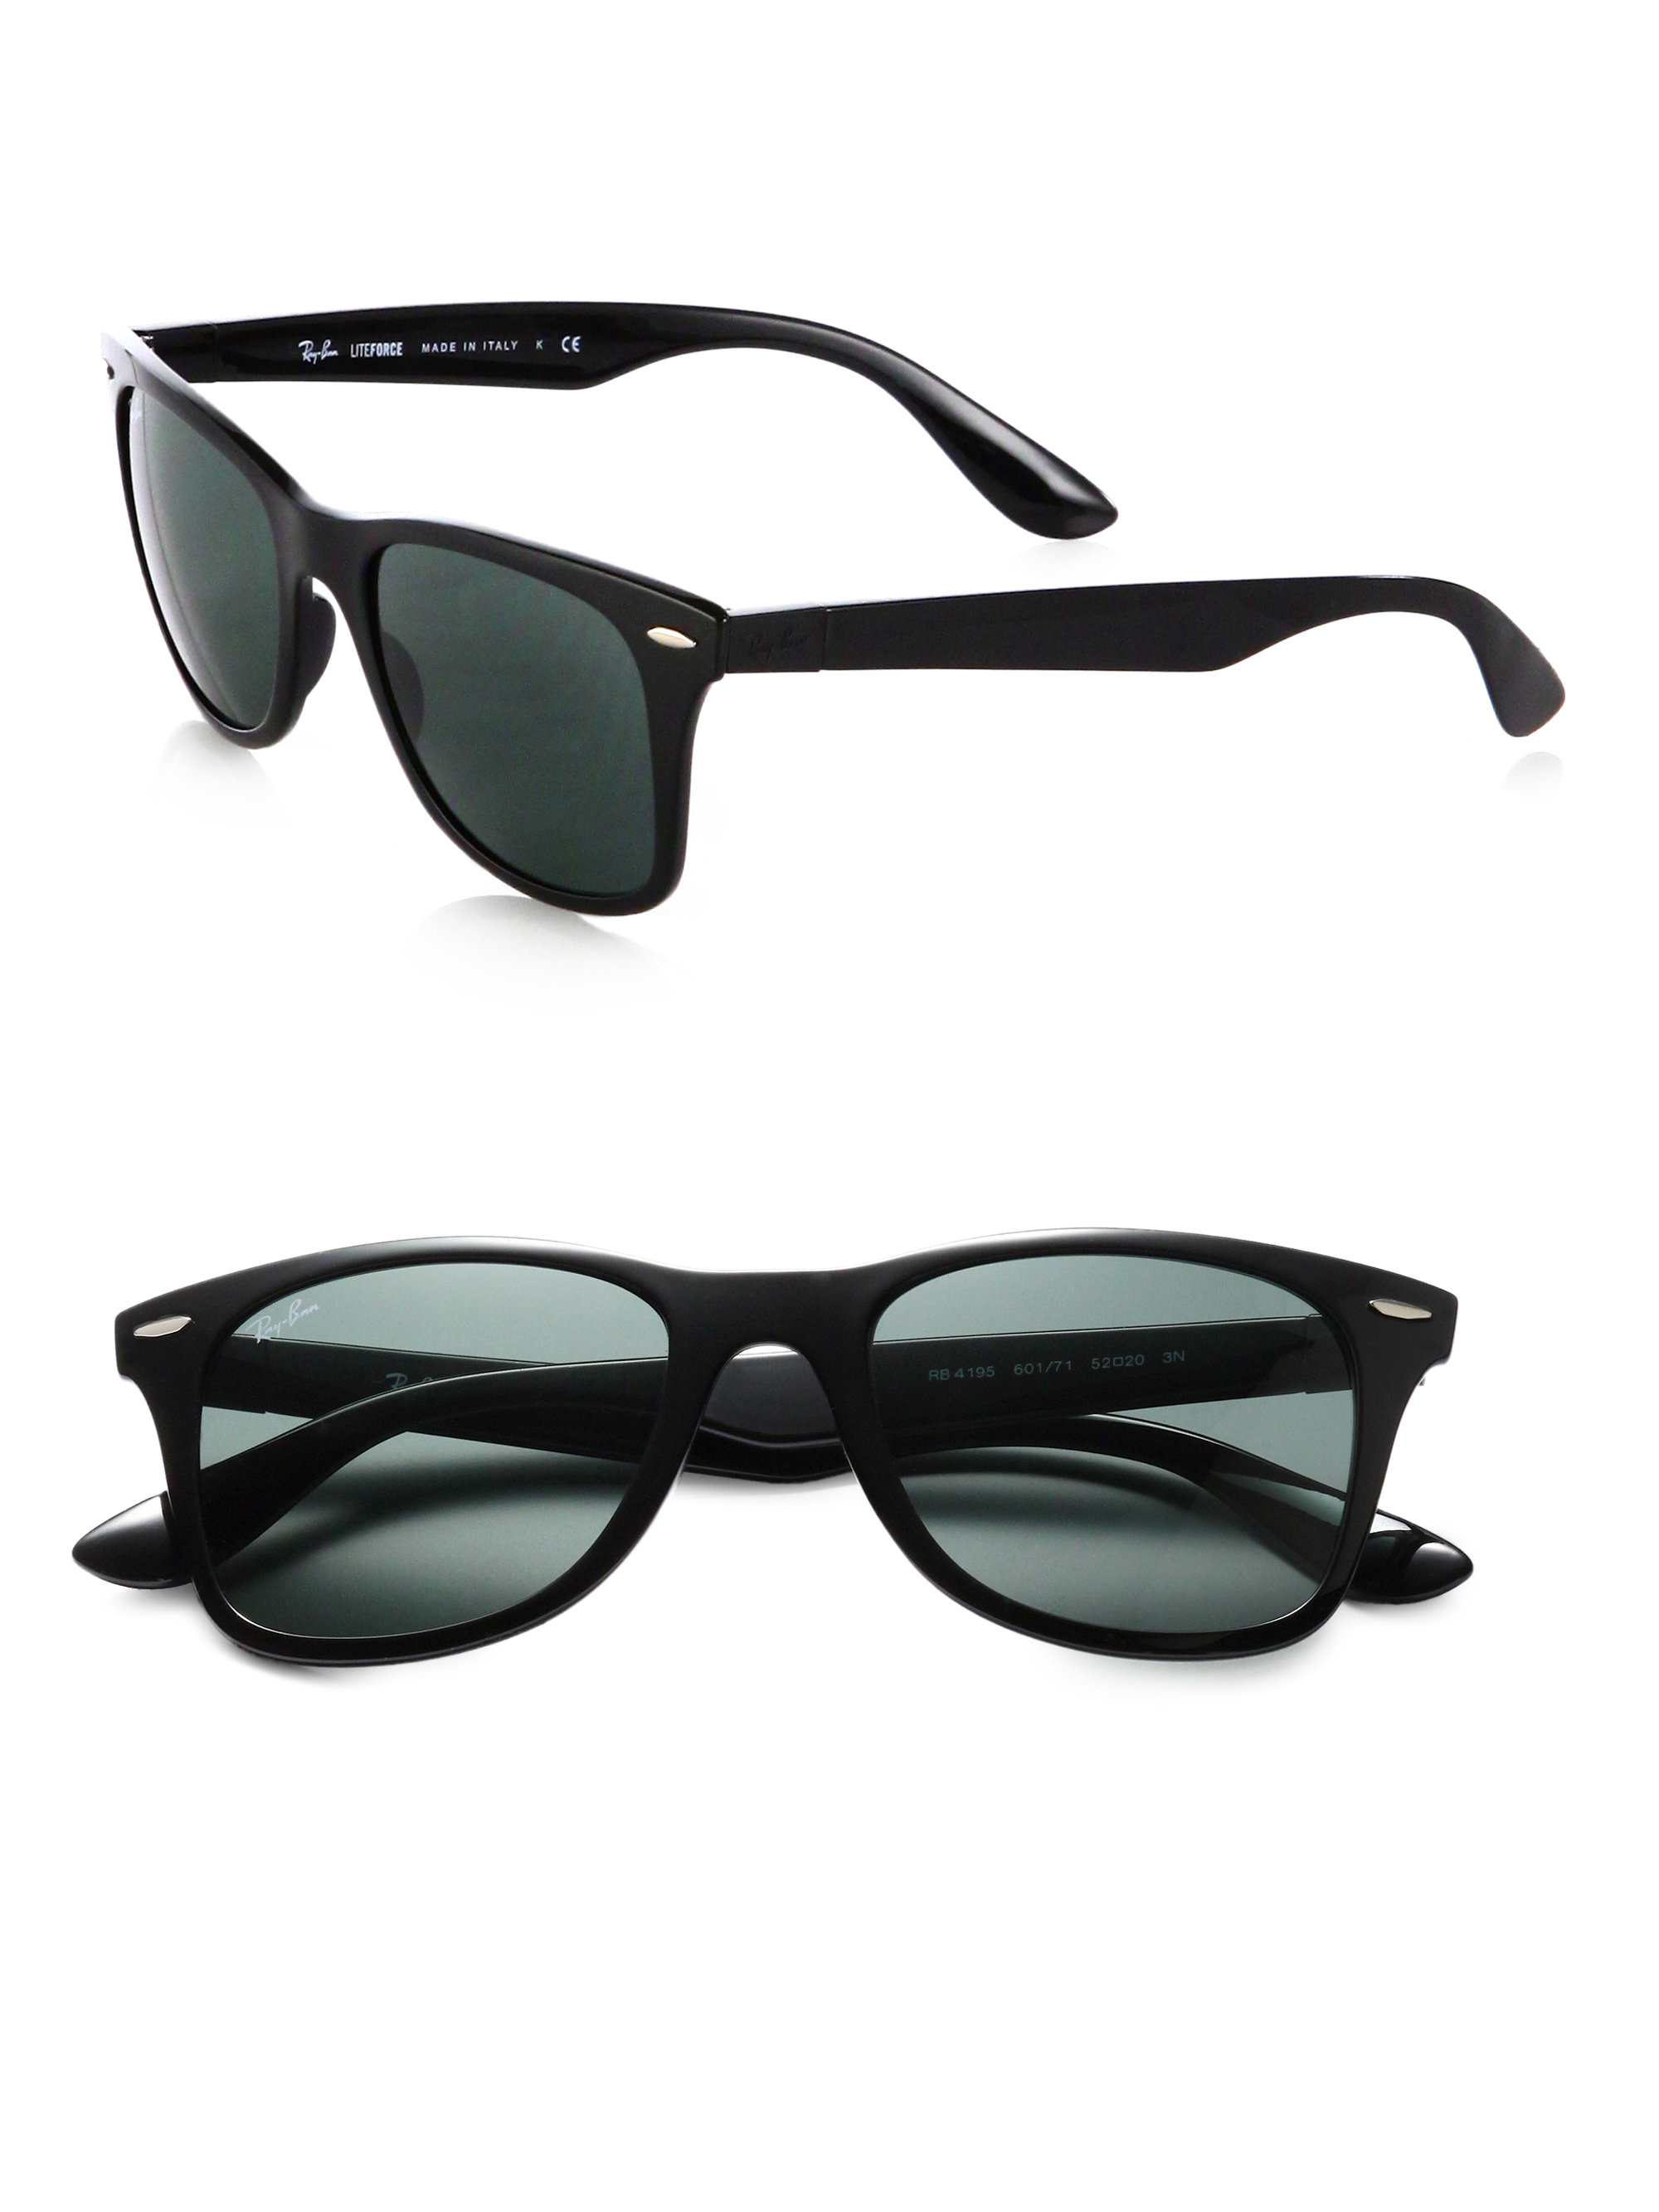 Lyst - Ray-Ban Sunglasses in Green